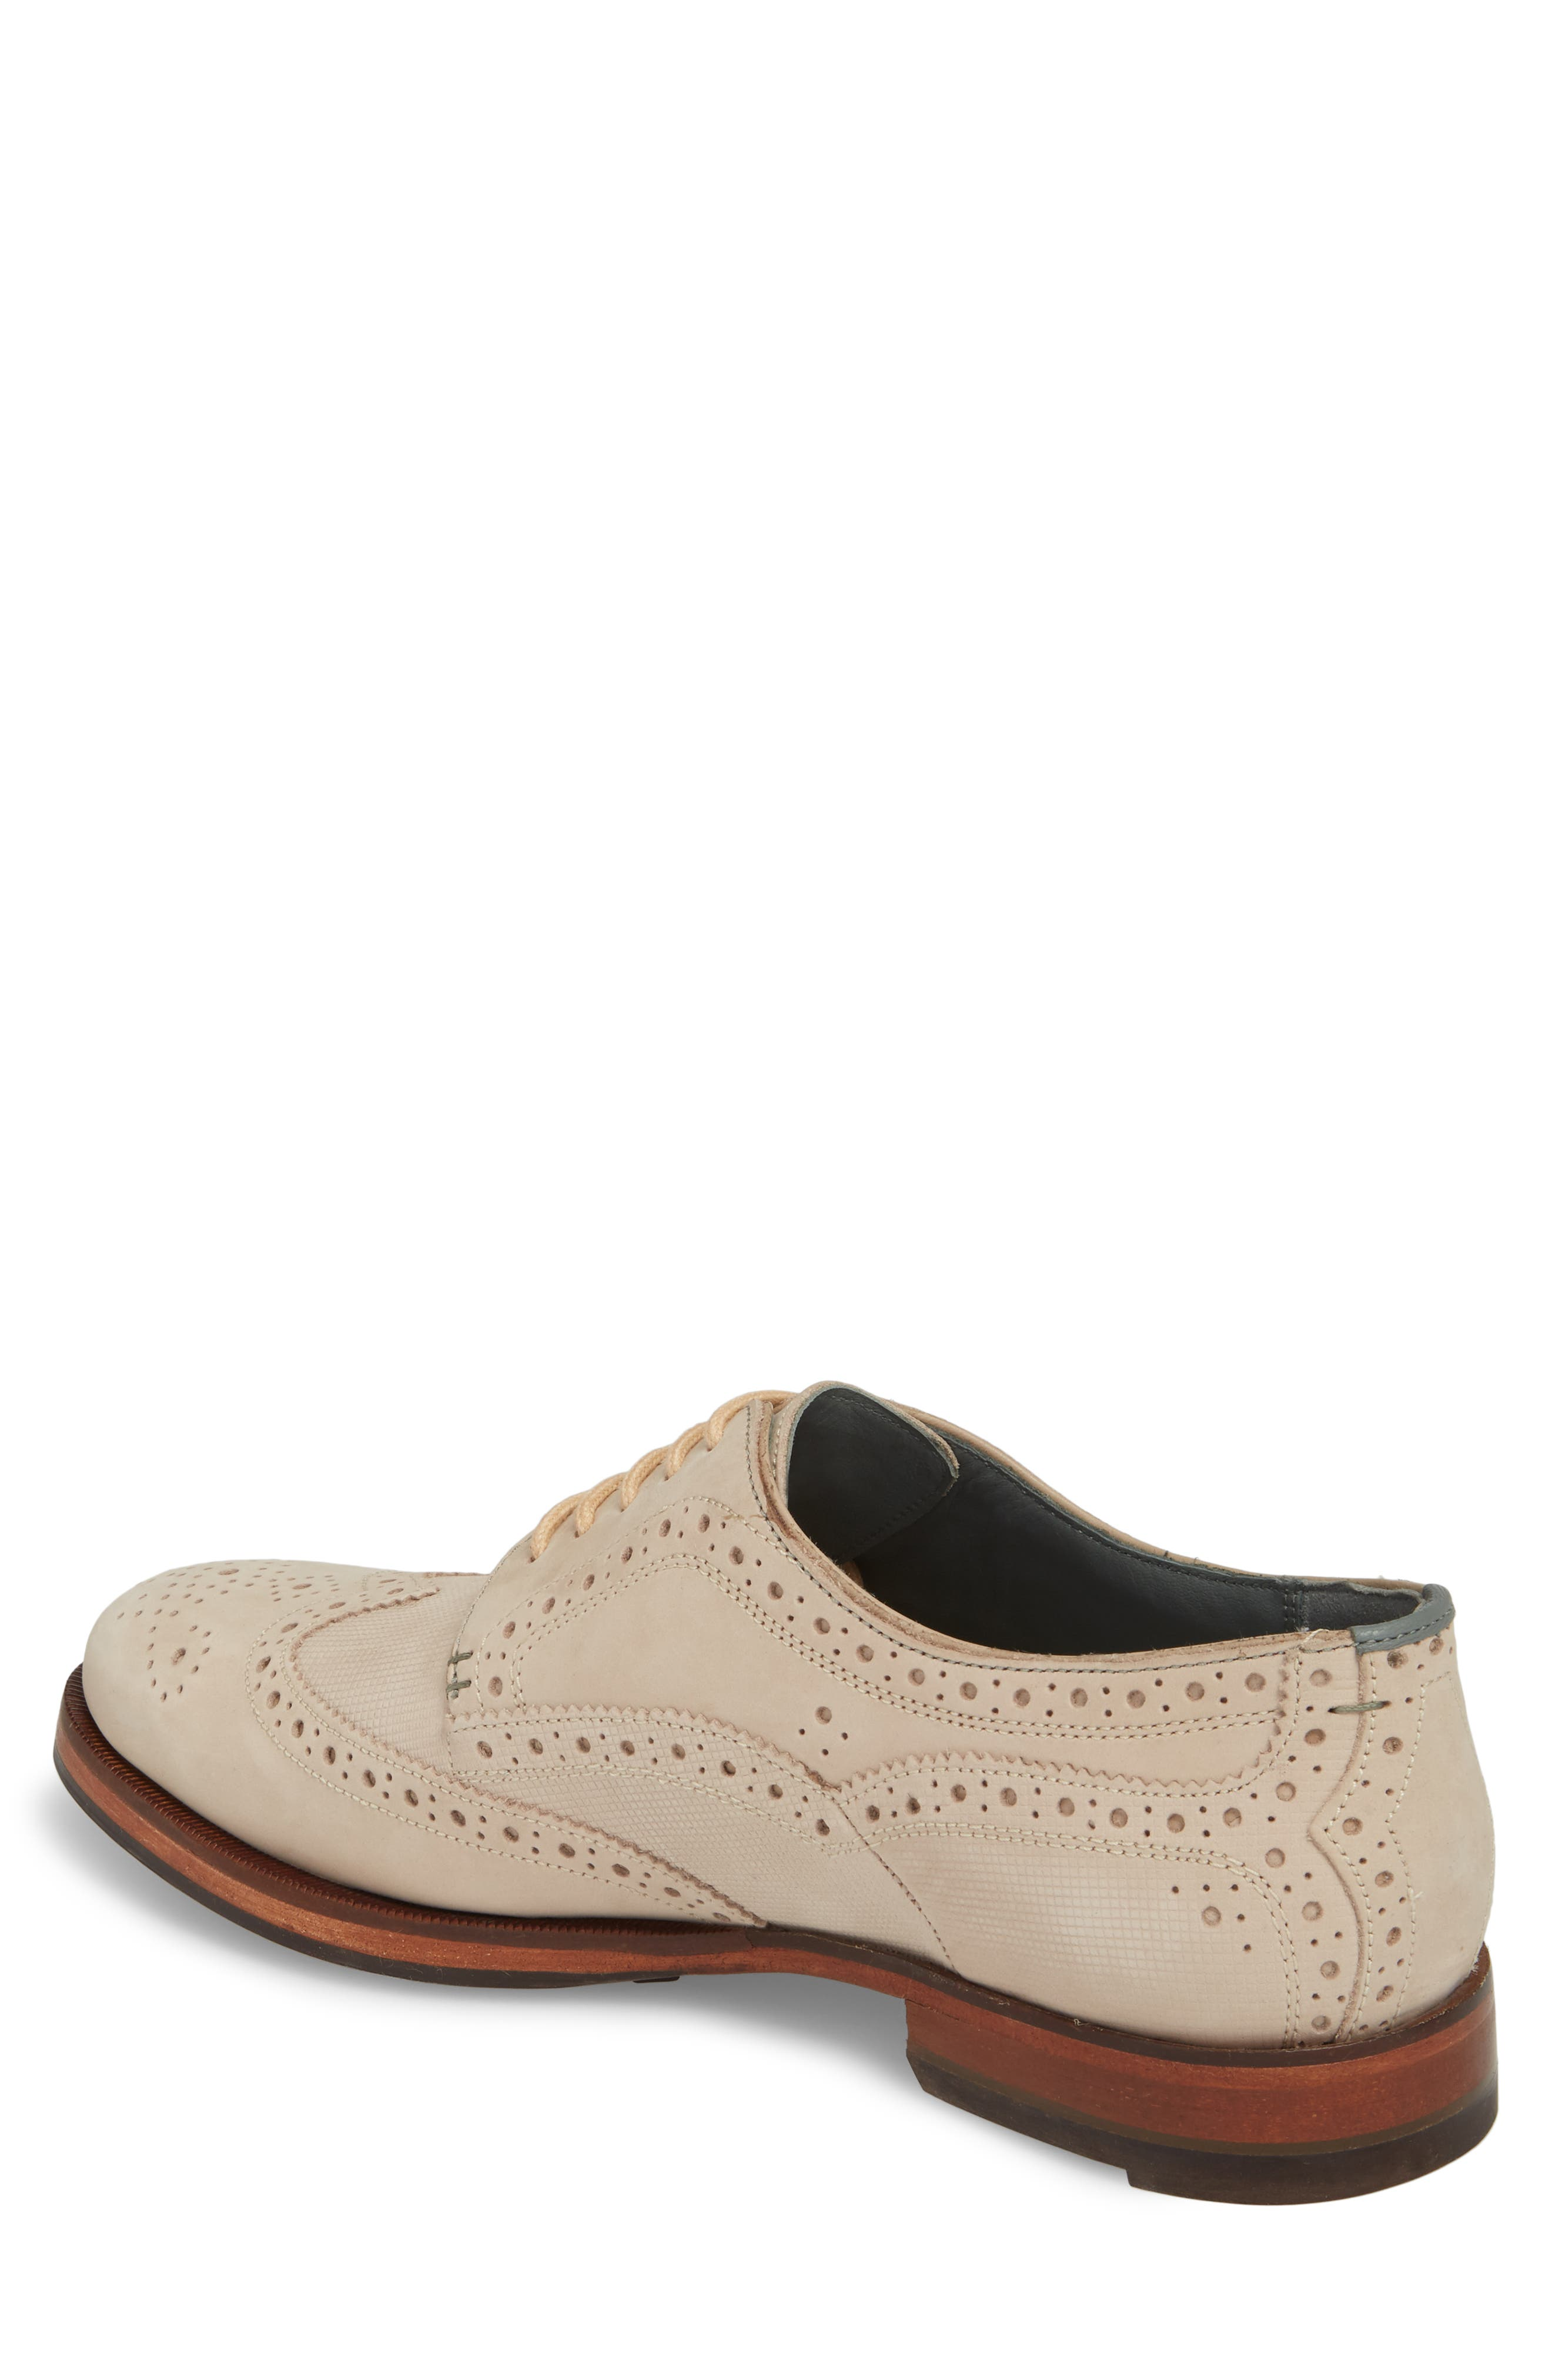 Senapen Wingtip Derby,                             Alternate thumbnail 2, color,                             LIGHT TAN SUEDE